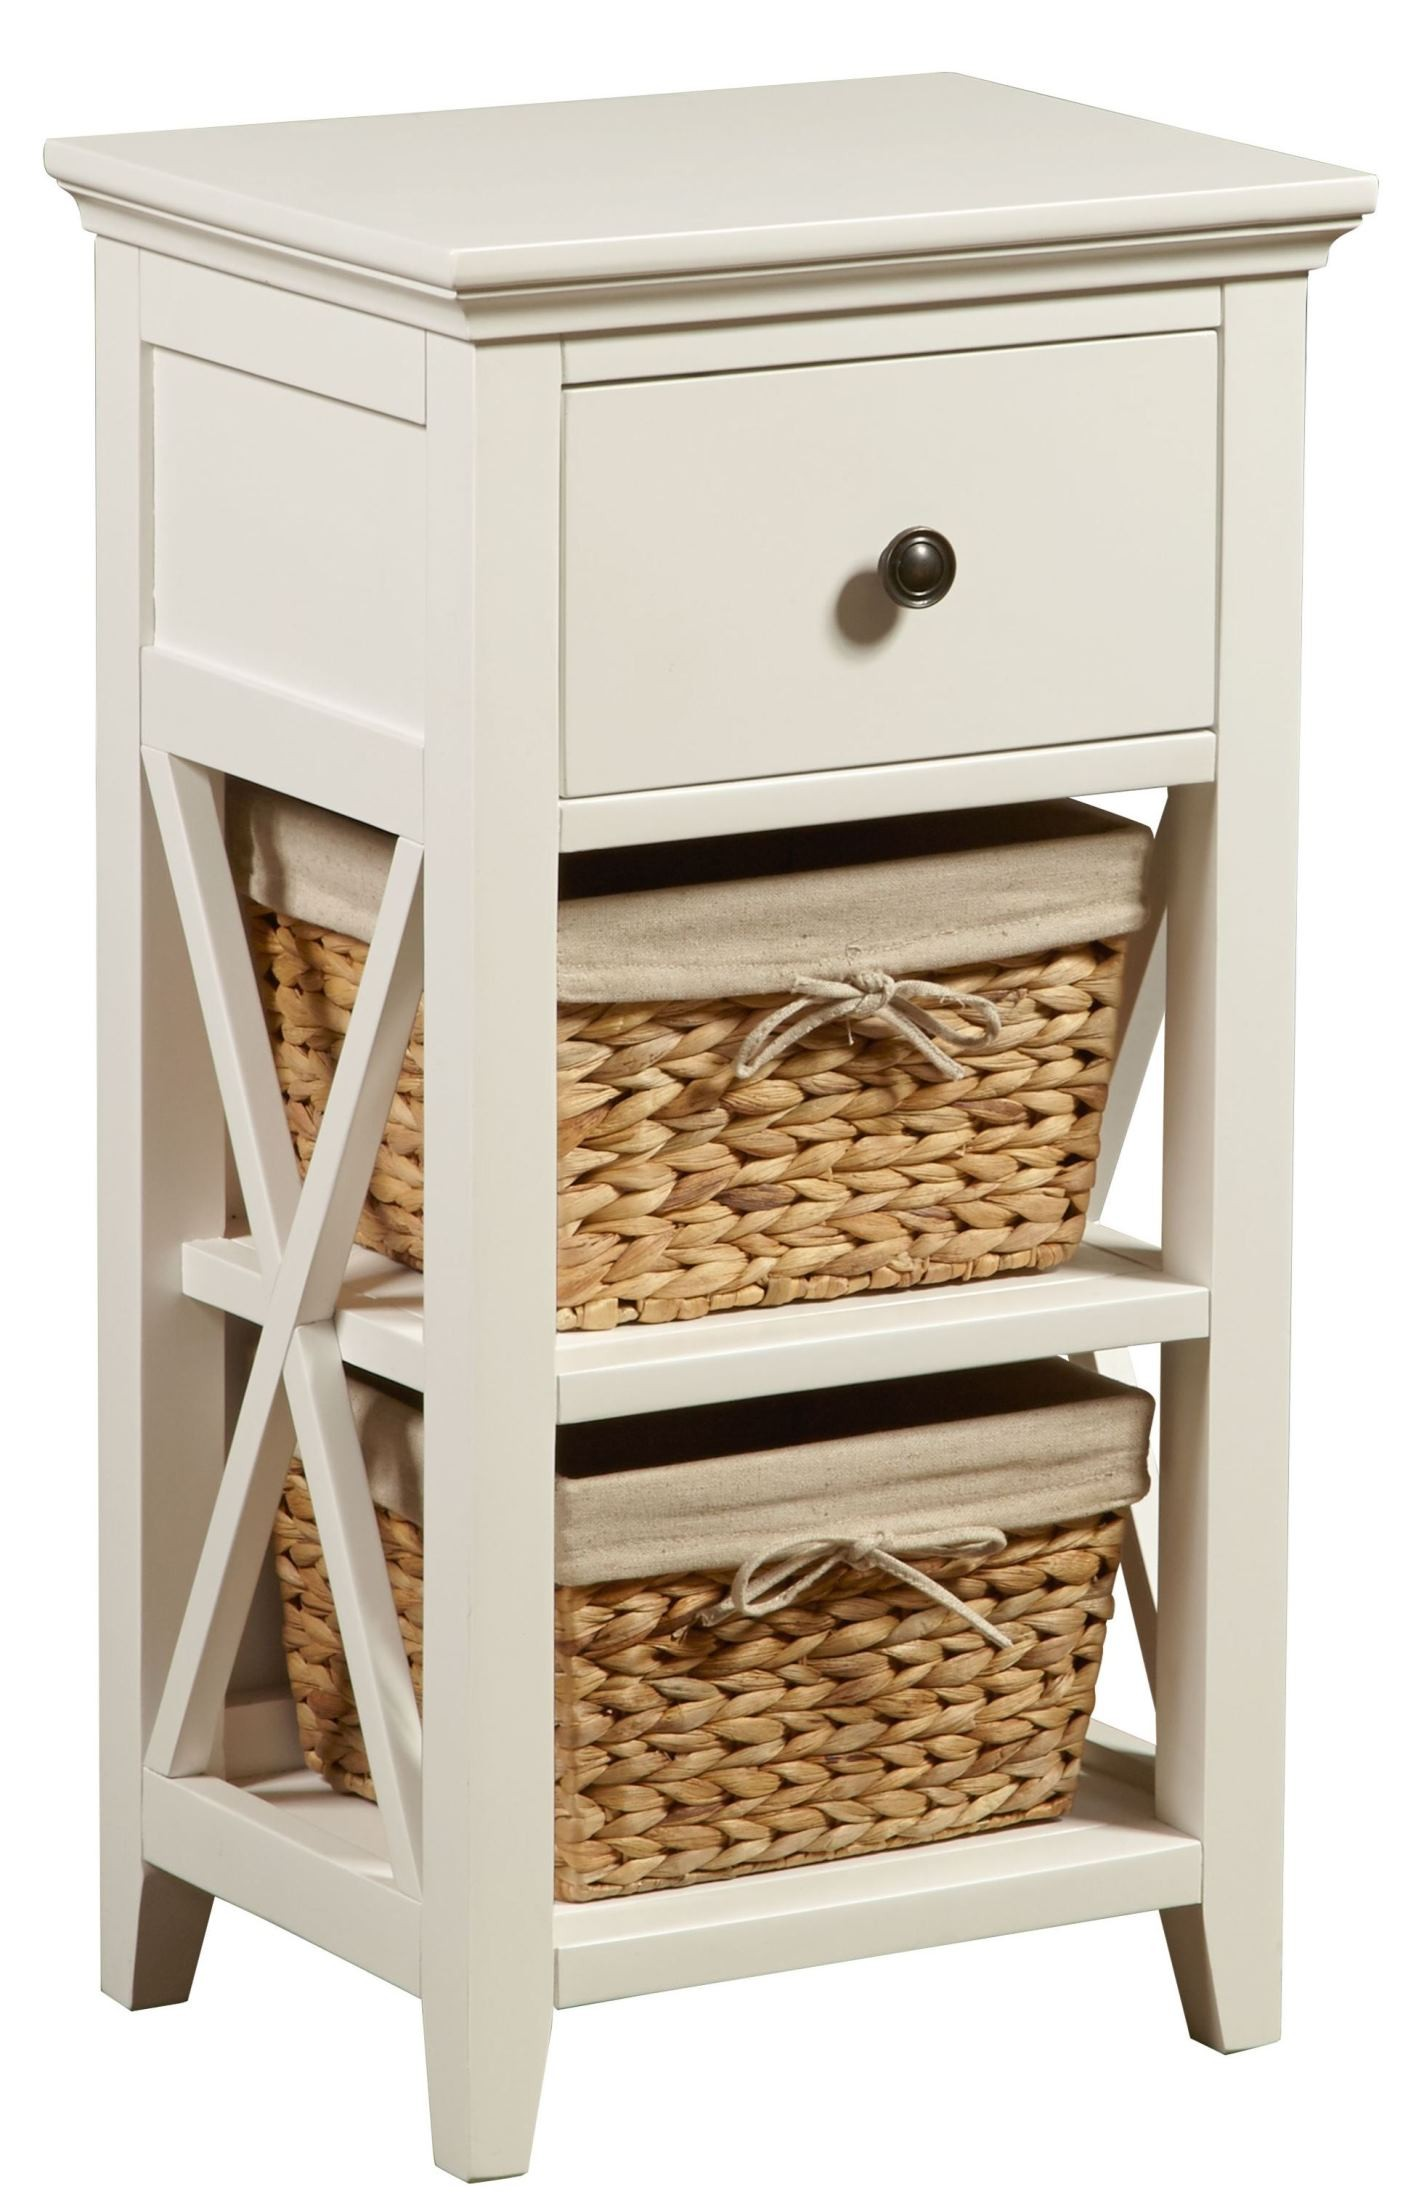 White Linen Basket Bathroom Storage From Pulaski Coleman Furniture